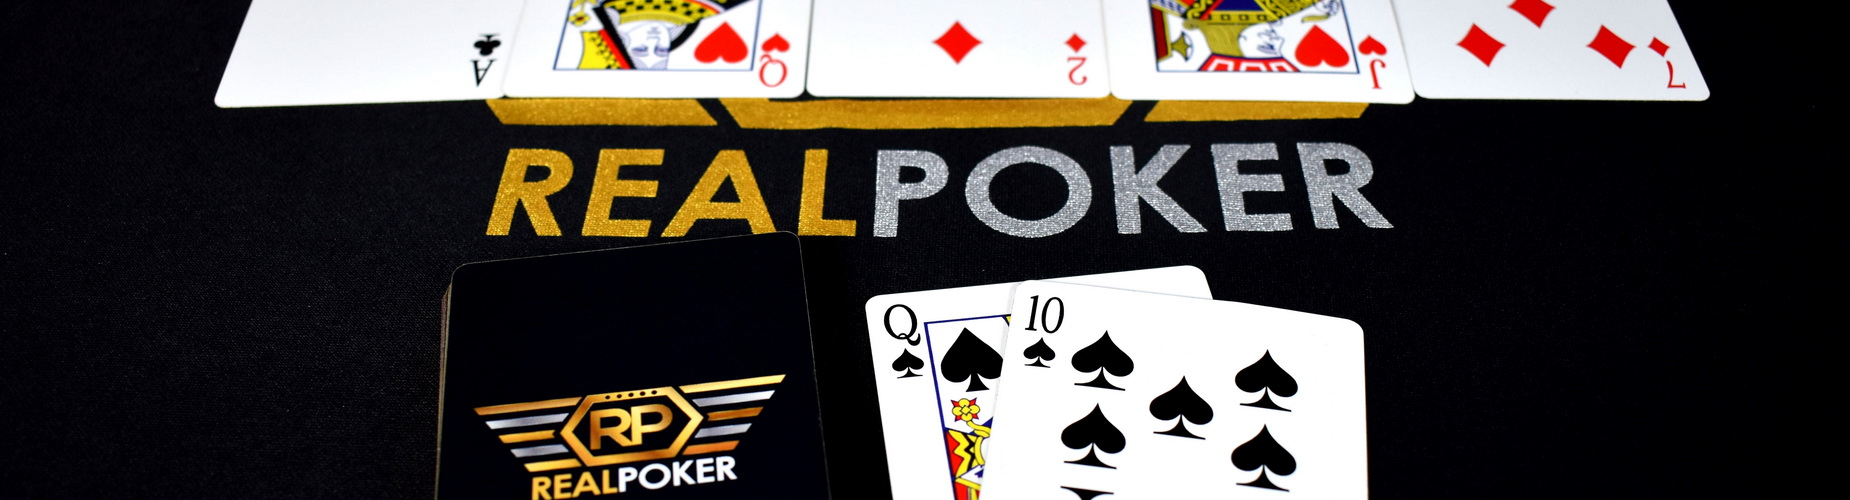 Don't get complacent in online poker